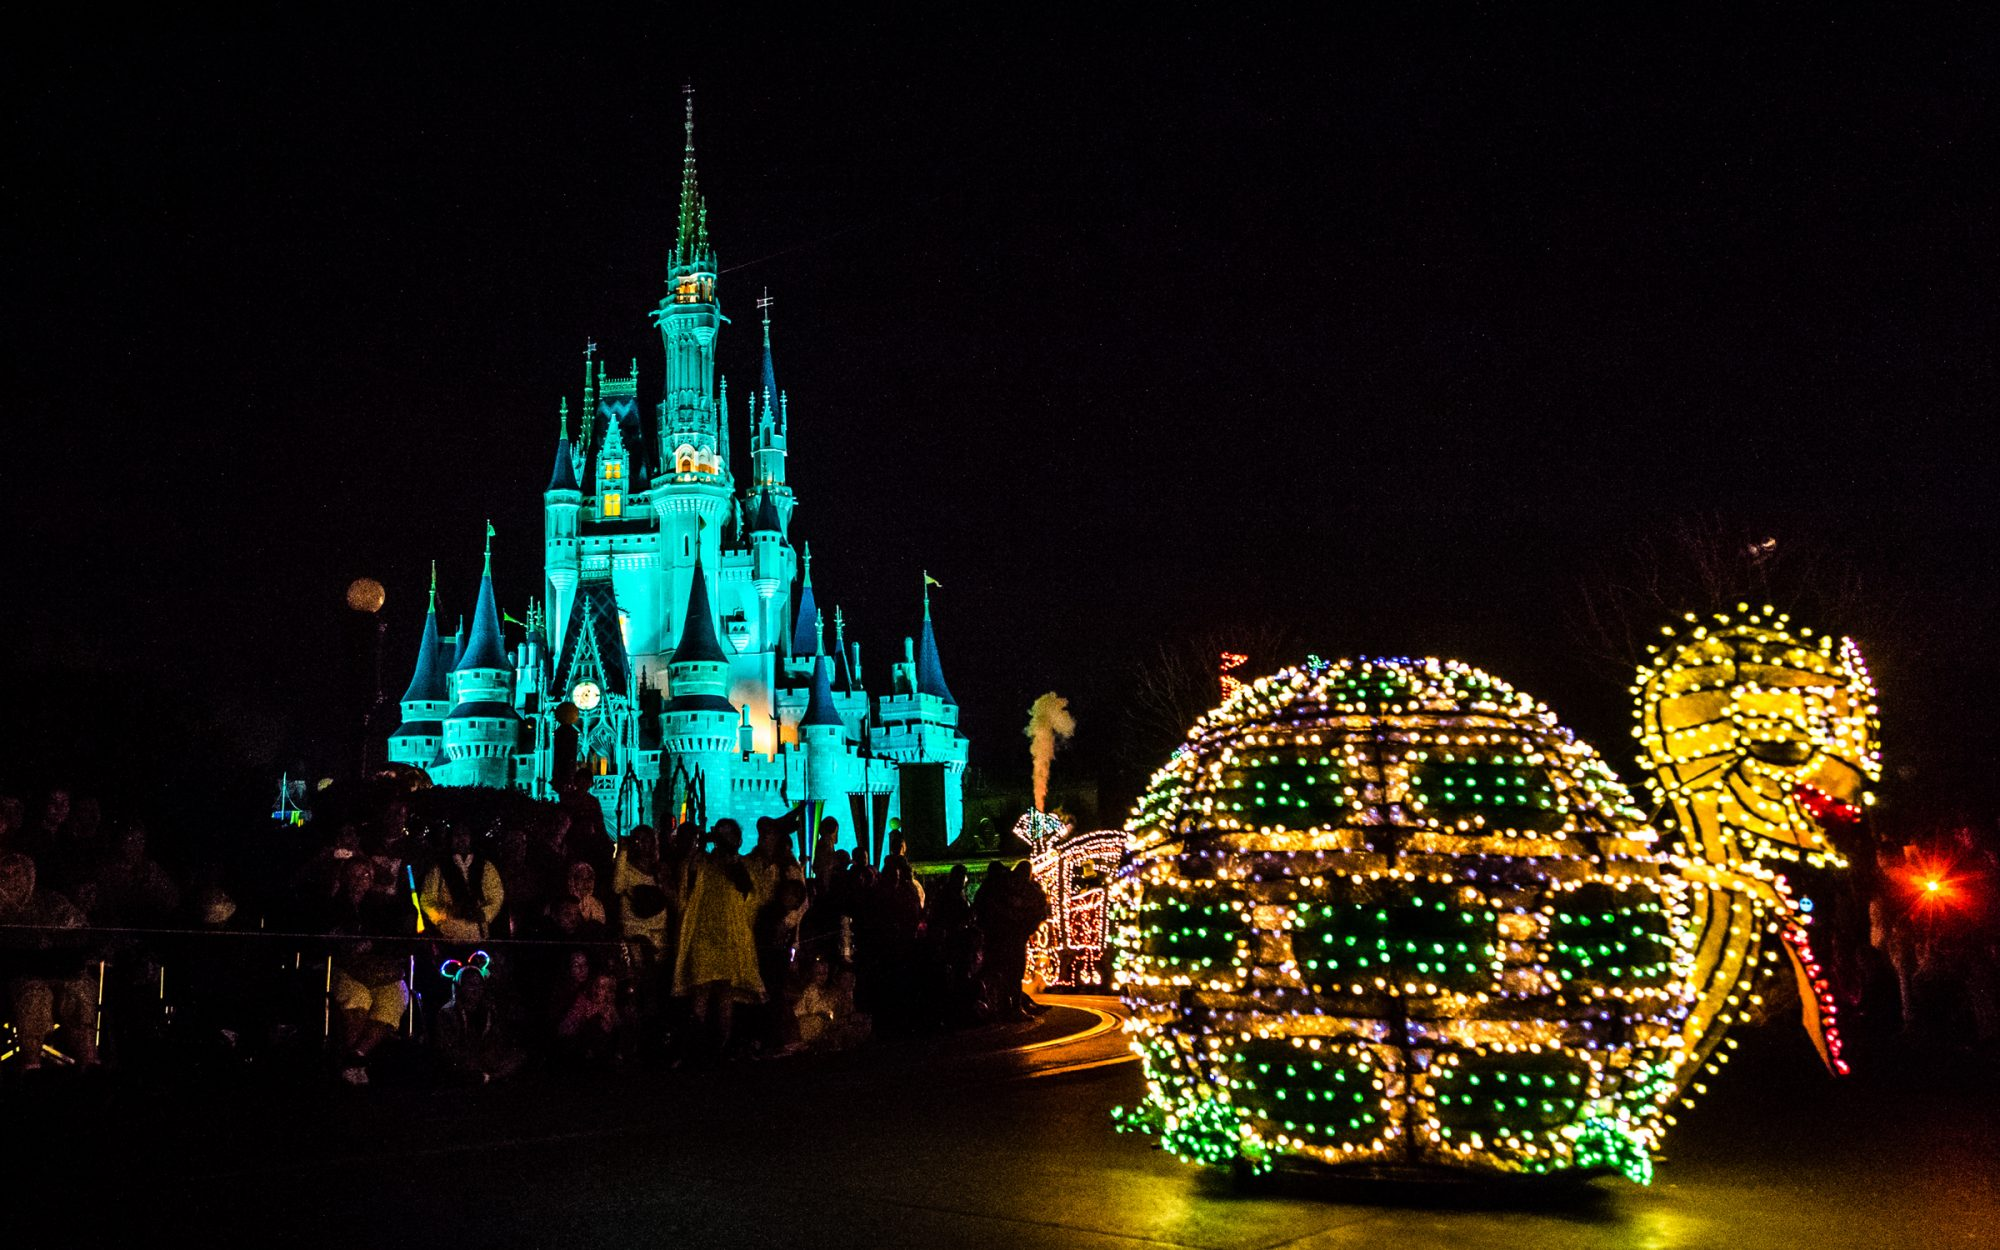 Disney World Electrical Parade To End